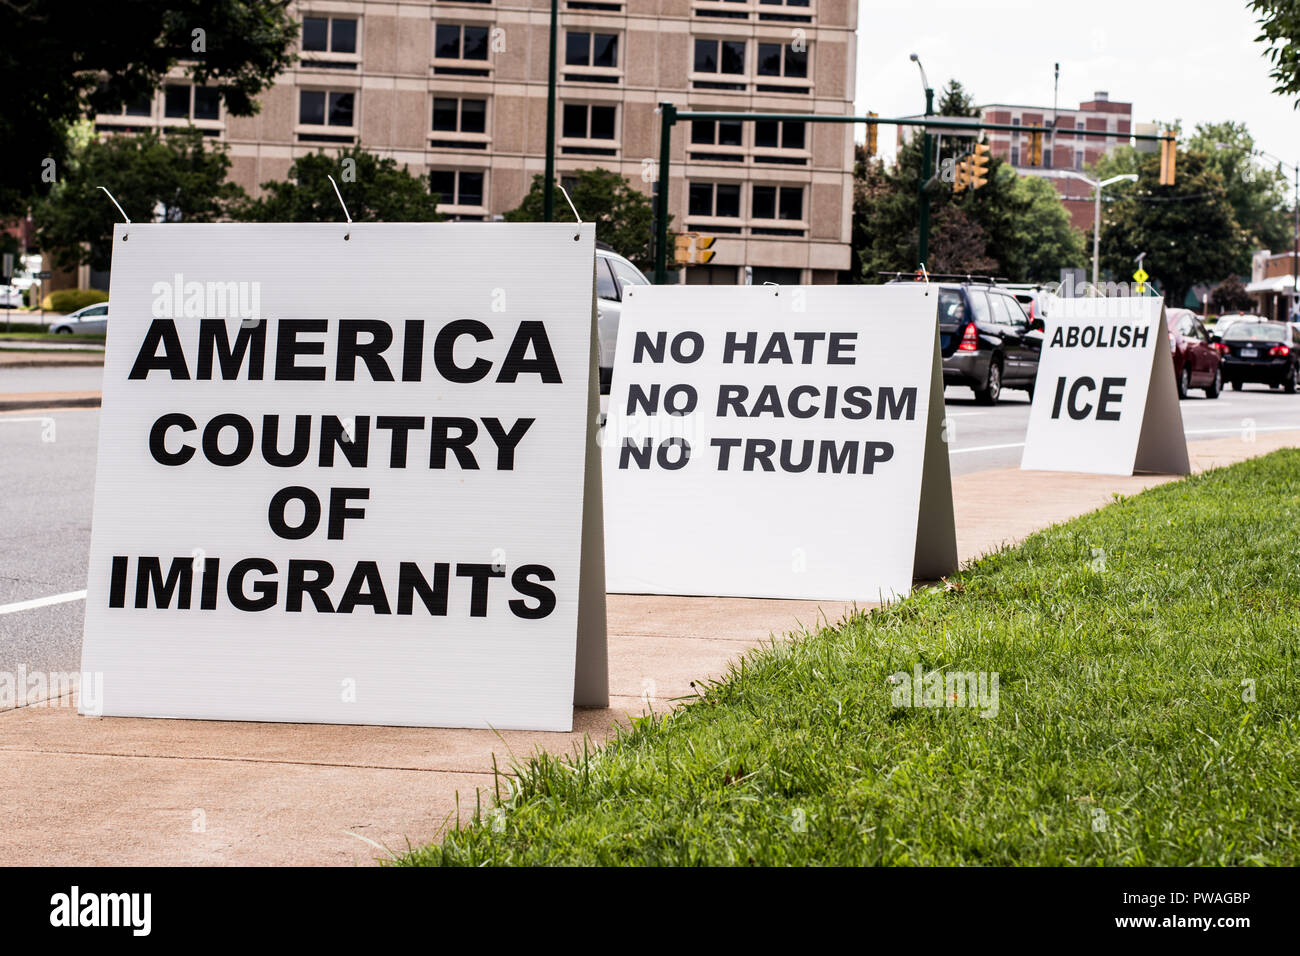 June 30, 2018 Charlottesville, Virginia U.S.A. Nationwide demonstration with activists protesting the separation of illegal immigrant families after b - Stock Image